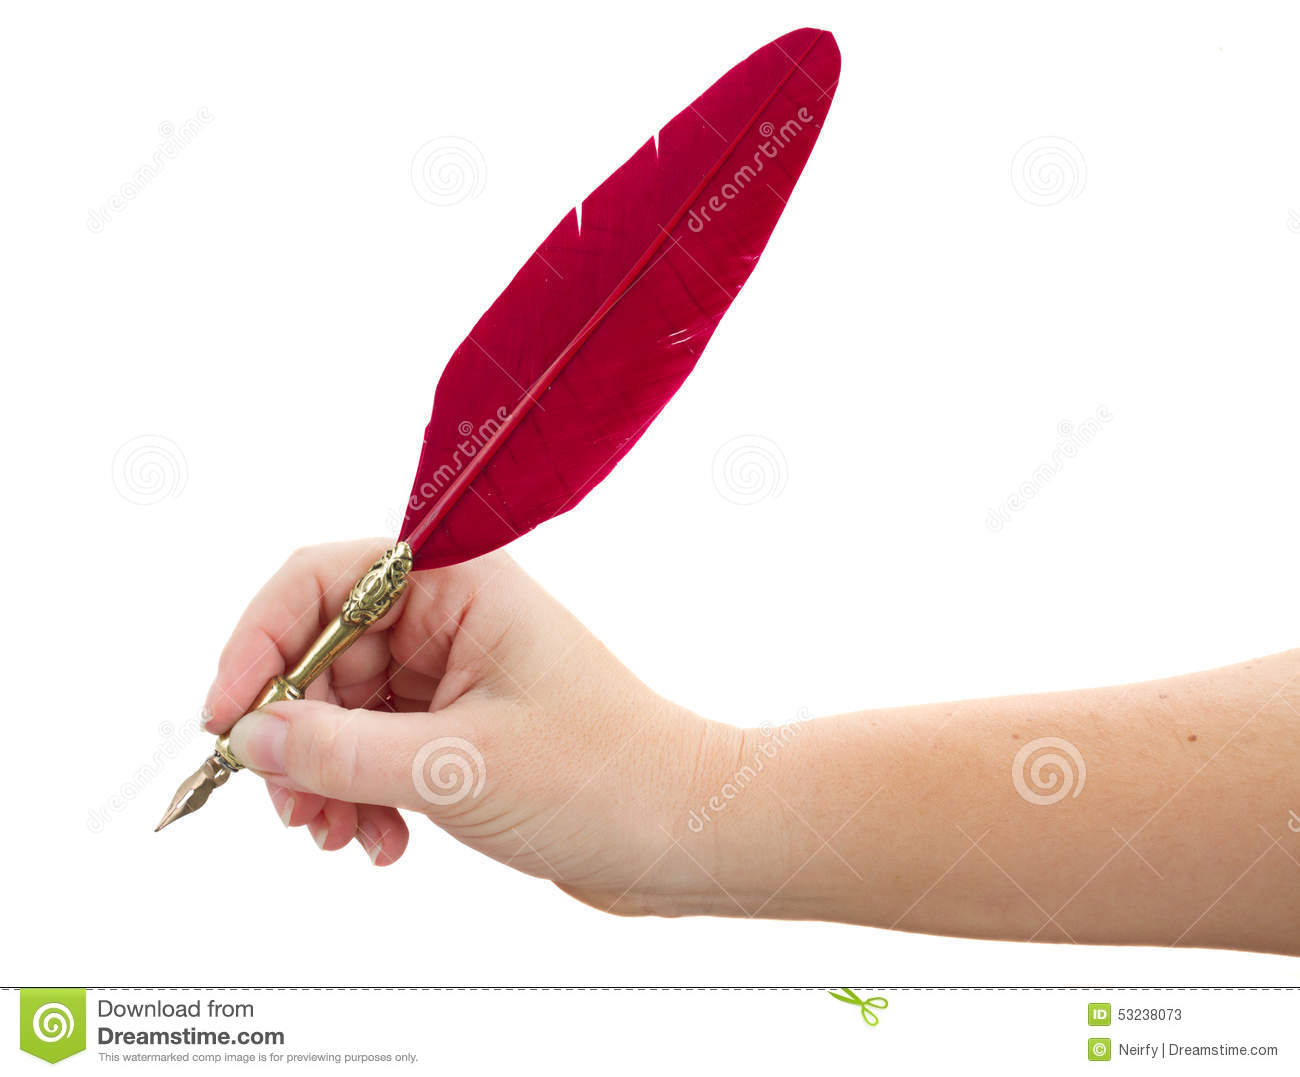 essay contest red feather Our essay contest aims to bridge this gap the intima essay contest brings  together students of the medical sciences and humanities, medical practitioners, .